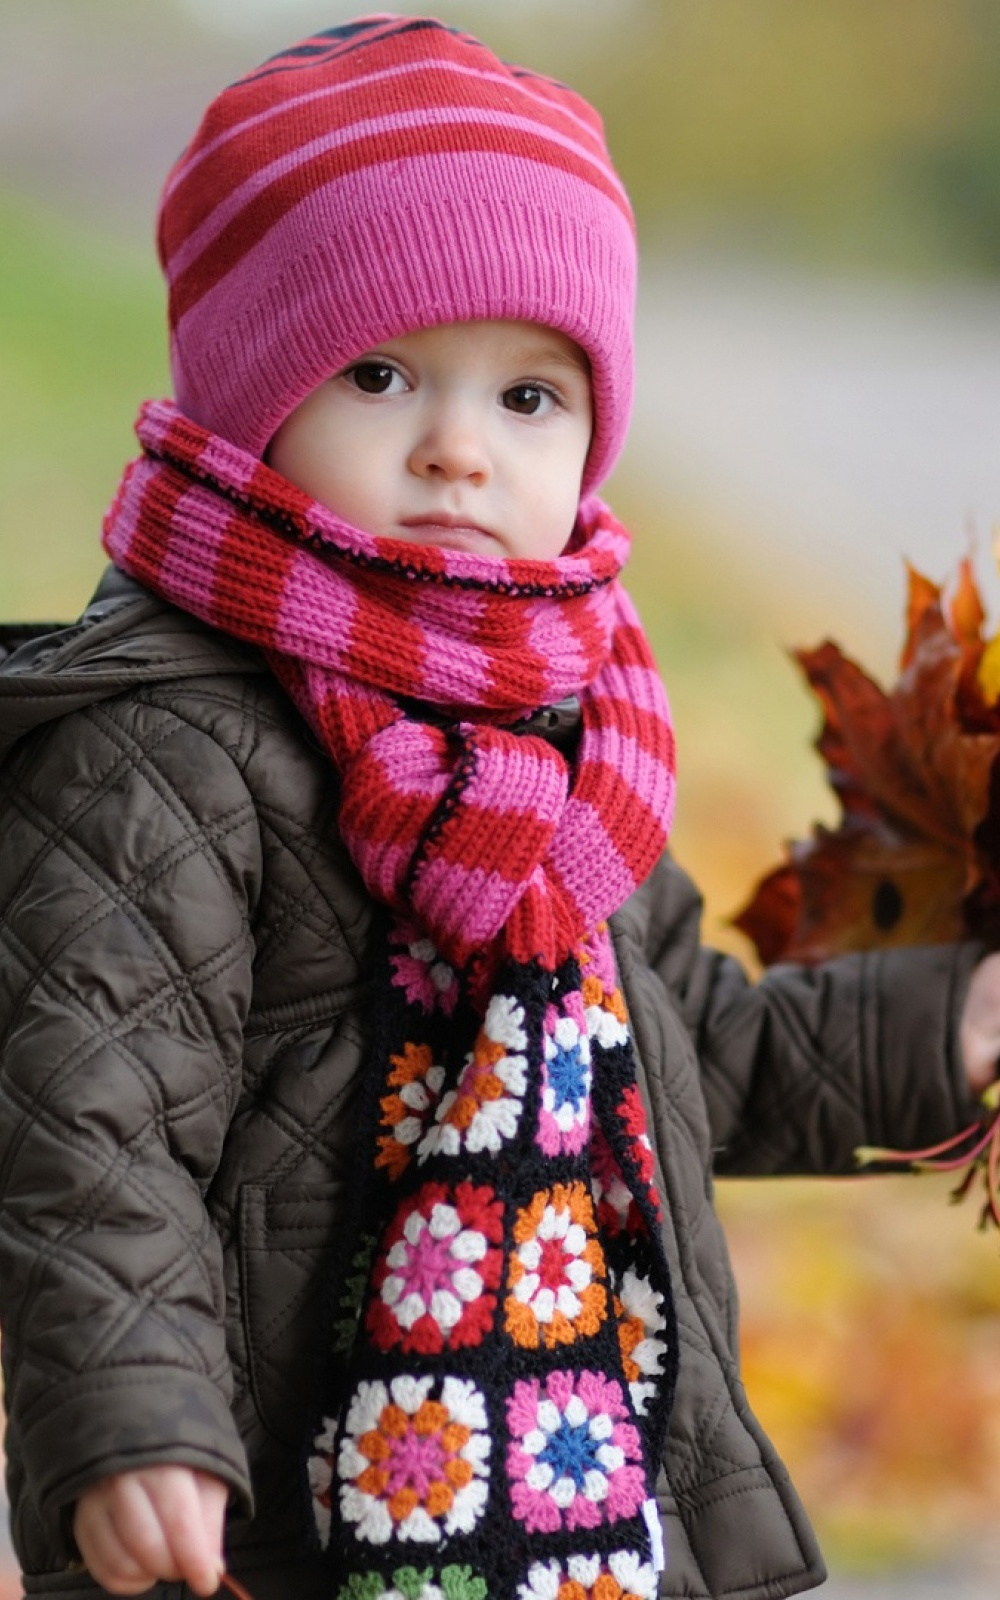 Cute Baby In Autumn Mobile Wallpaper Mobiles Wall